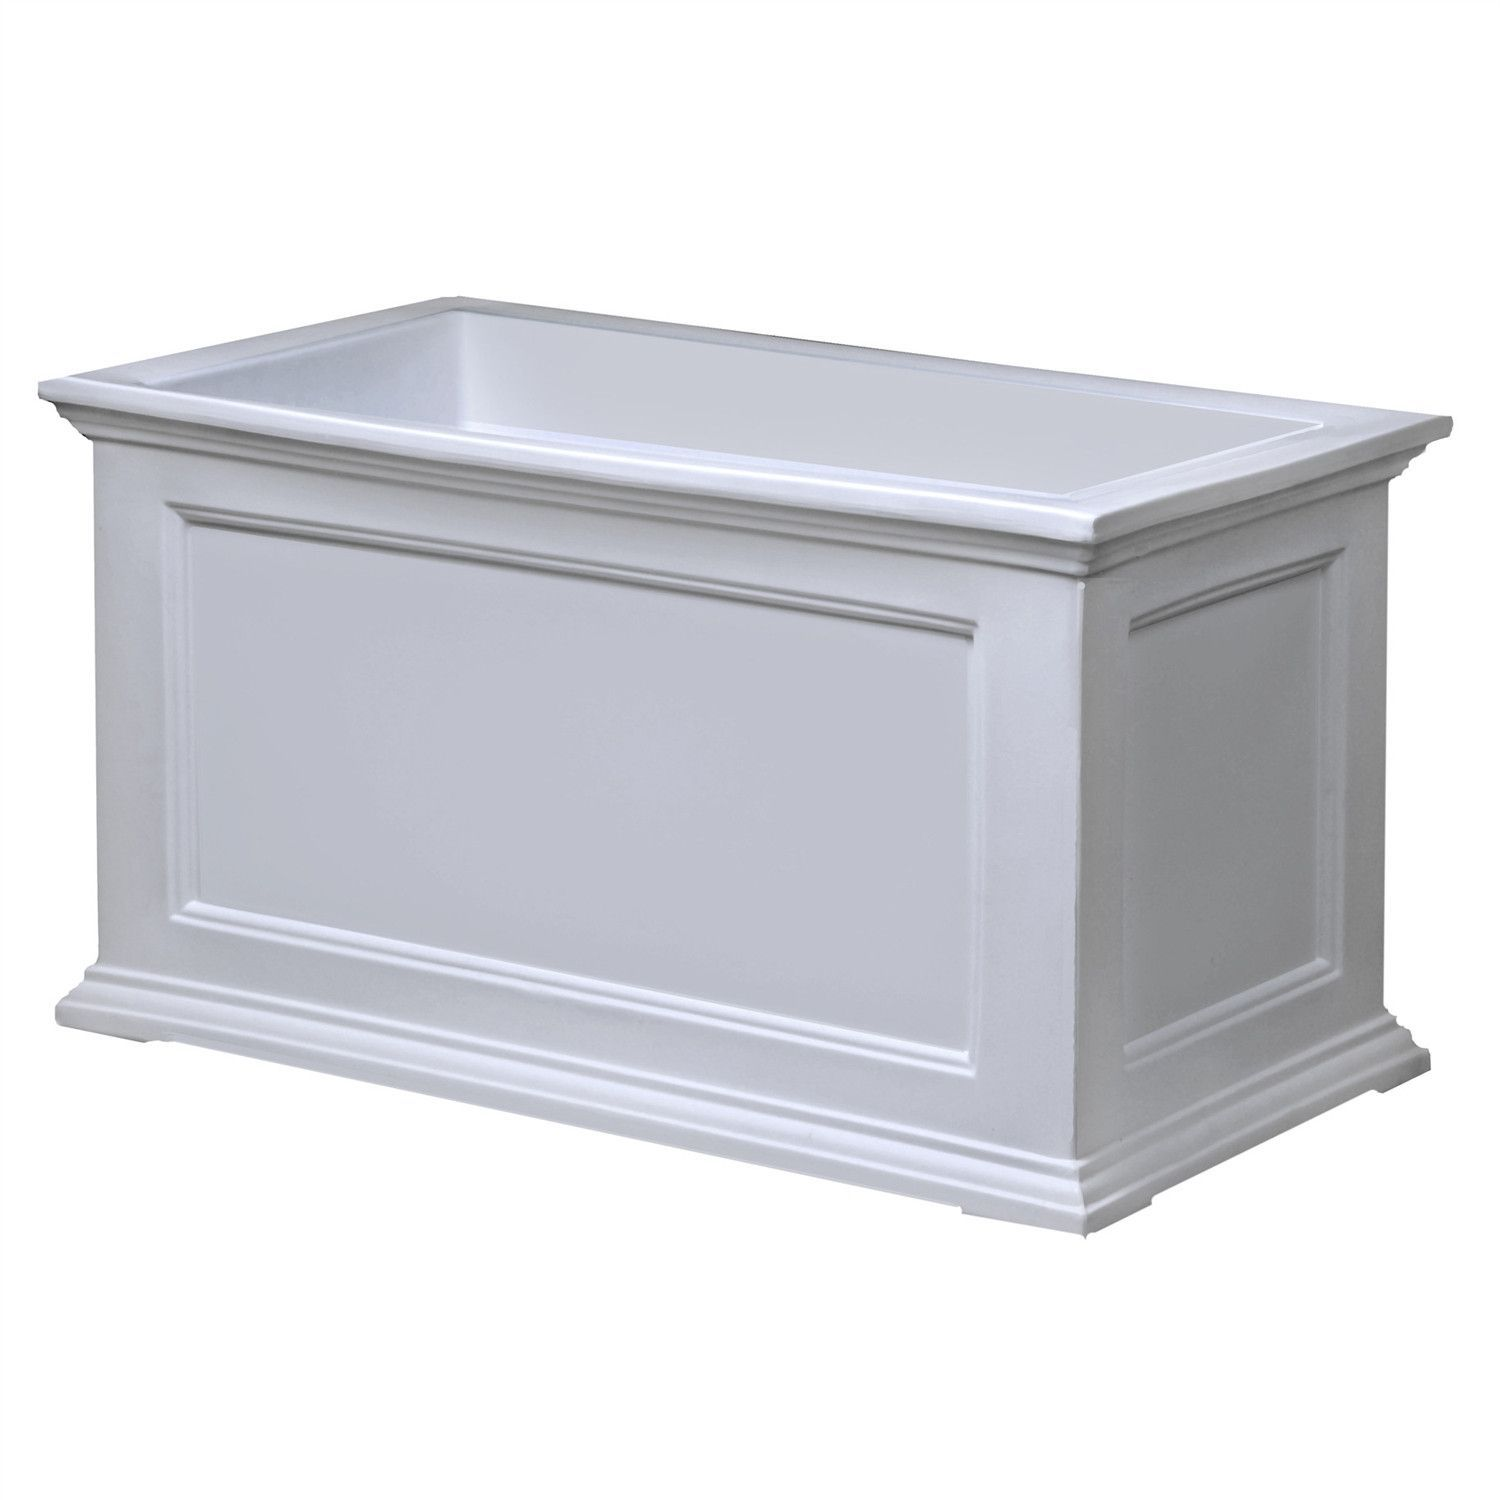 20 X 36 Inch Patio Planter In White   Made In USA